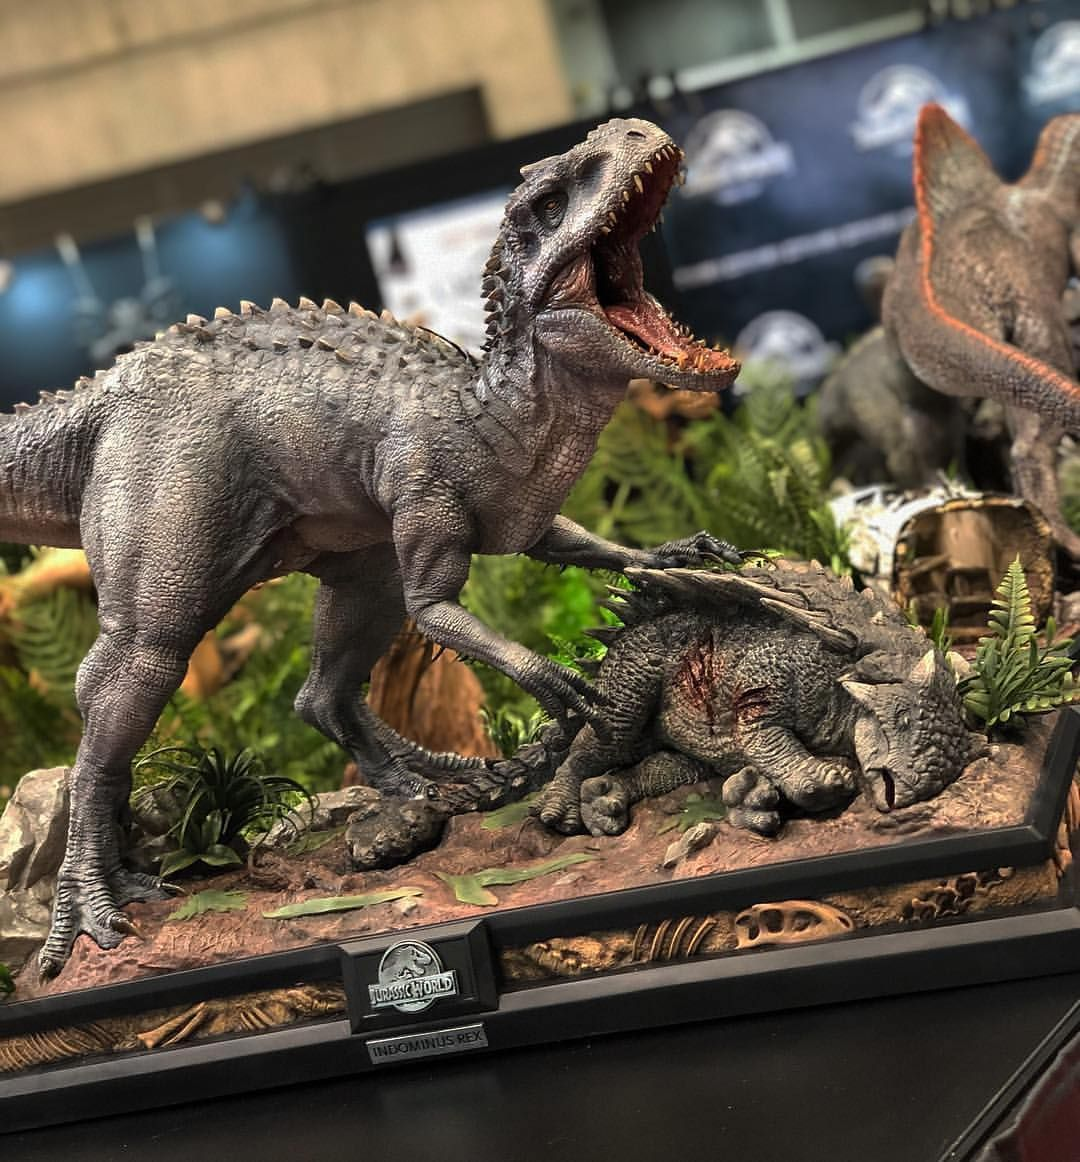 This Is Quite Interesting Early In Preproduction There Was Going To Be A White Indoraptor T Jurassic World Dinosaurs Jurassic Park World Jurassic Park Movie